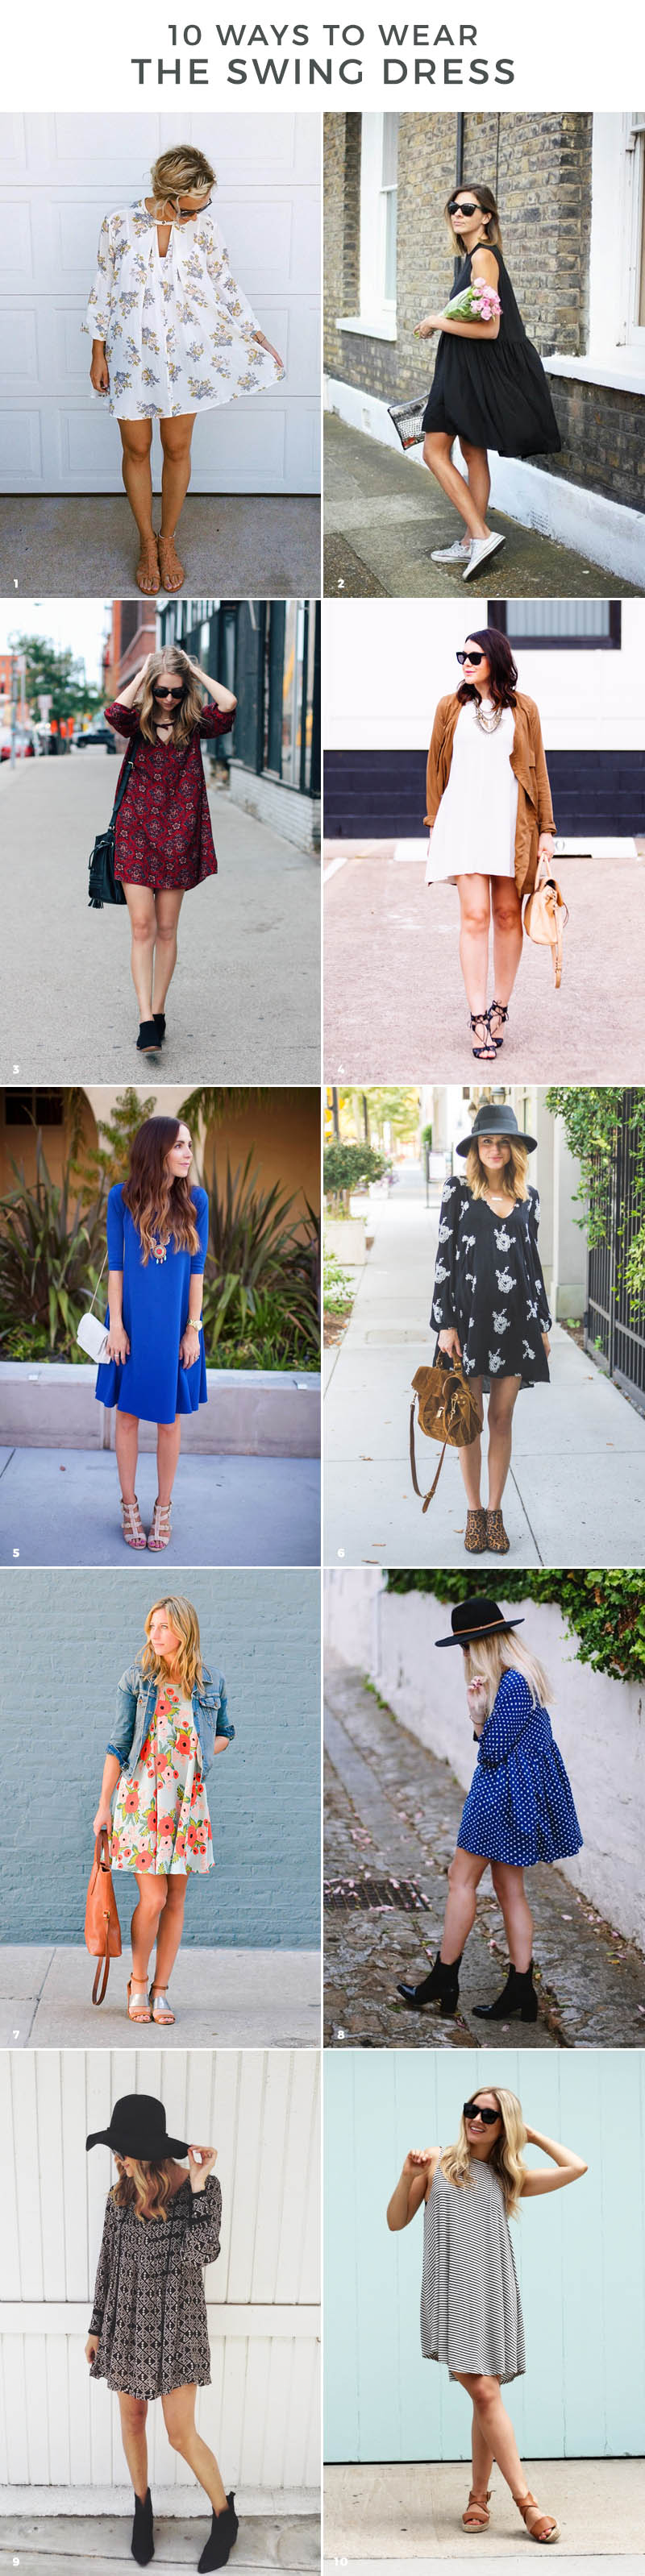 swing dress outfit ideas for spring 2016